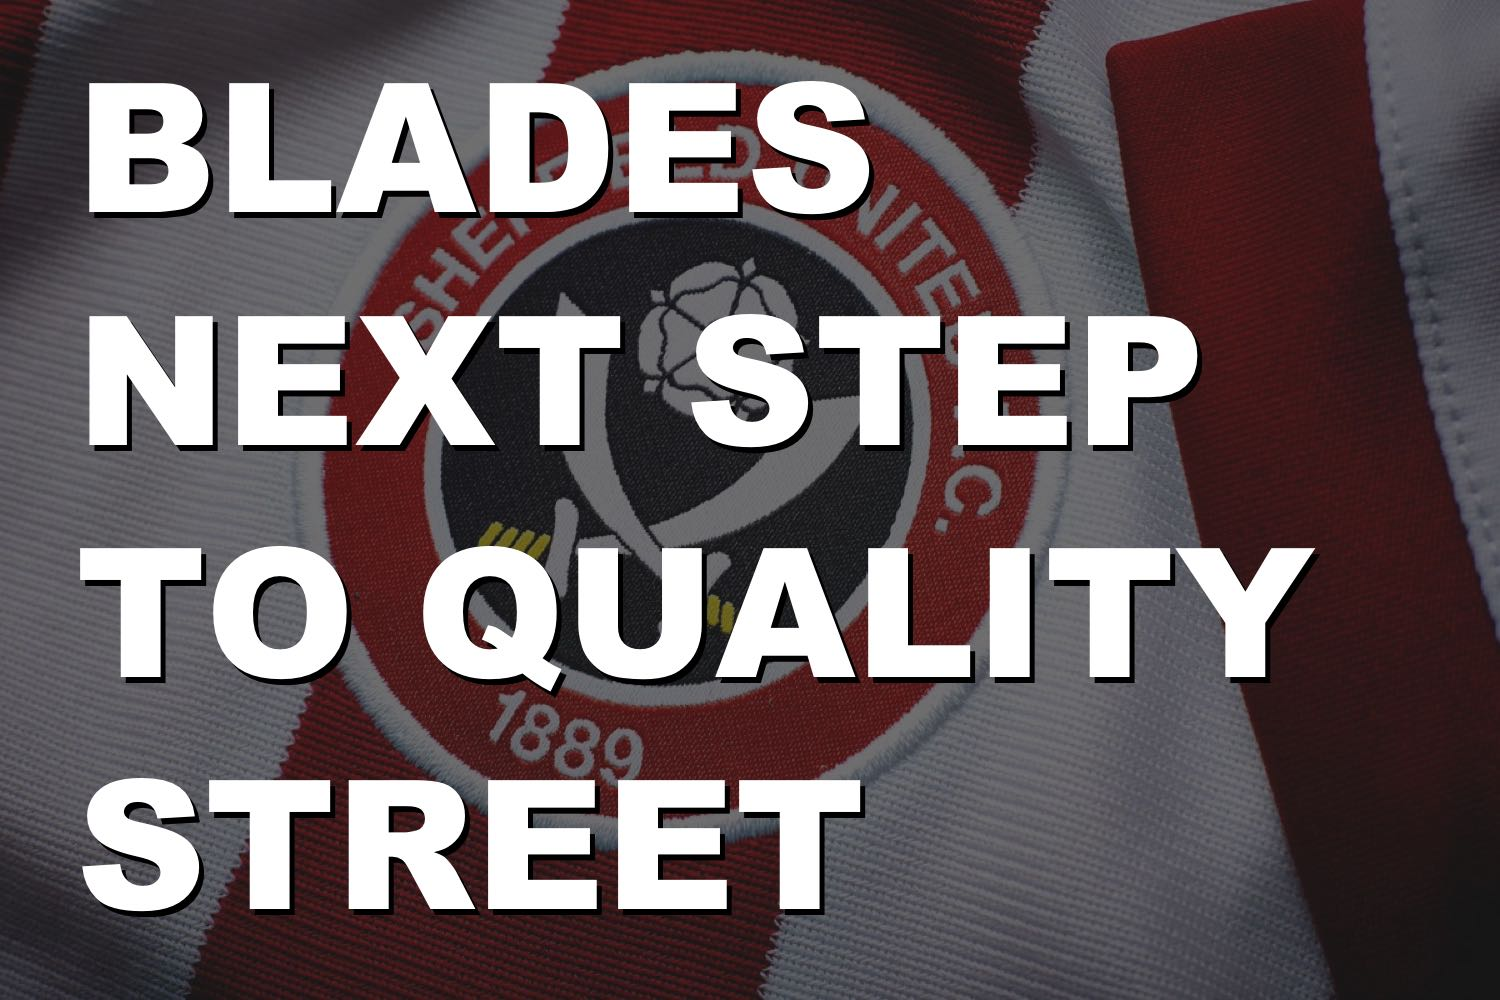 Sheffield United need to take a walk down Quality Street in January to keep promotion dream up and running